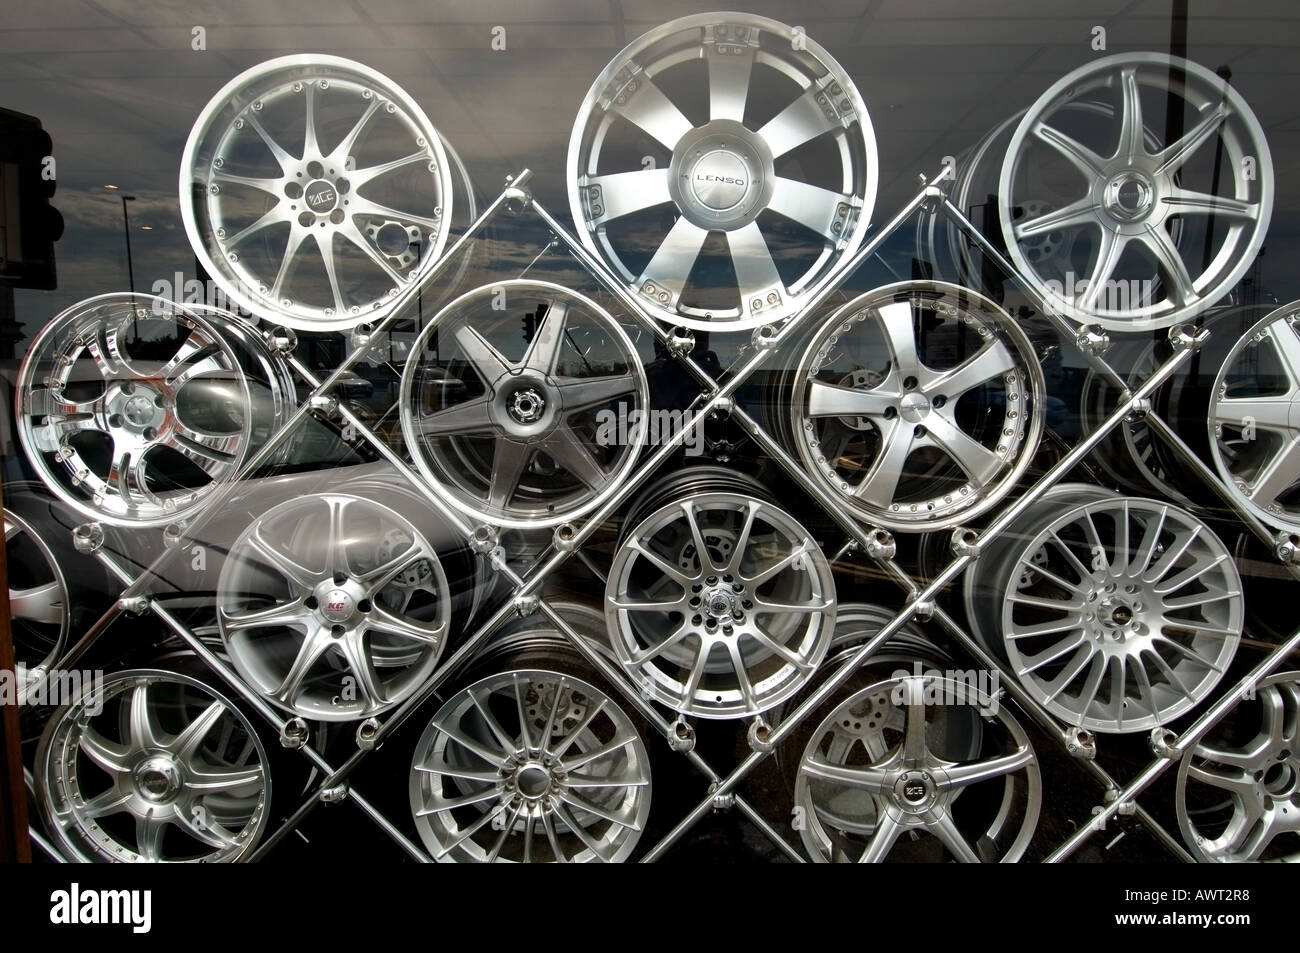 Designer alloy aluminium car wheels stacked on a metal rack in a shop window  display in Shoreham on Sea Sussex - Stock Image